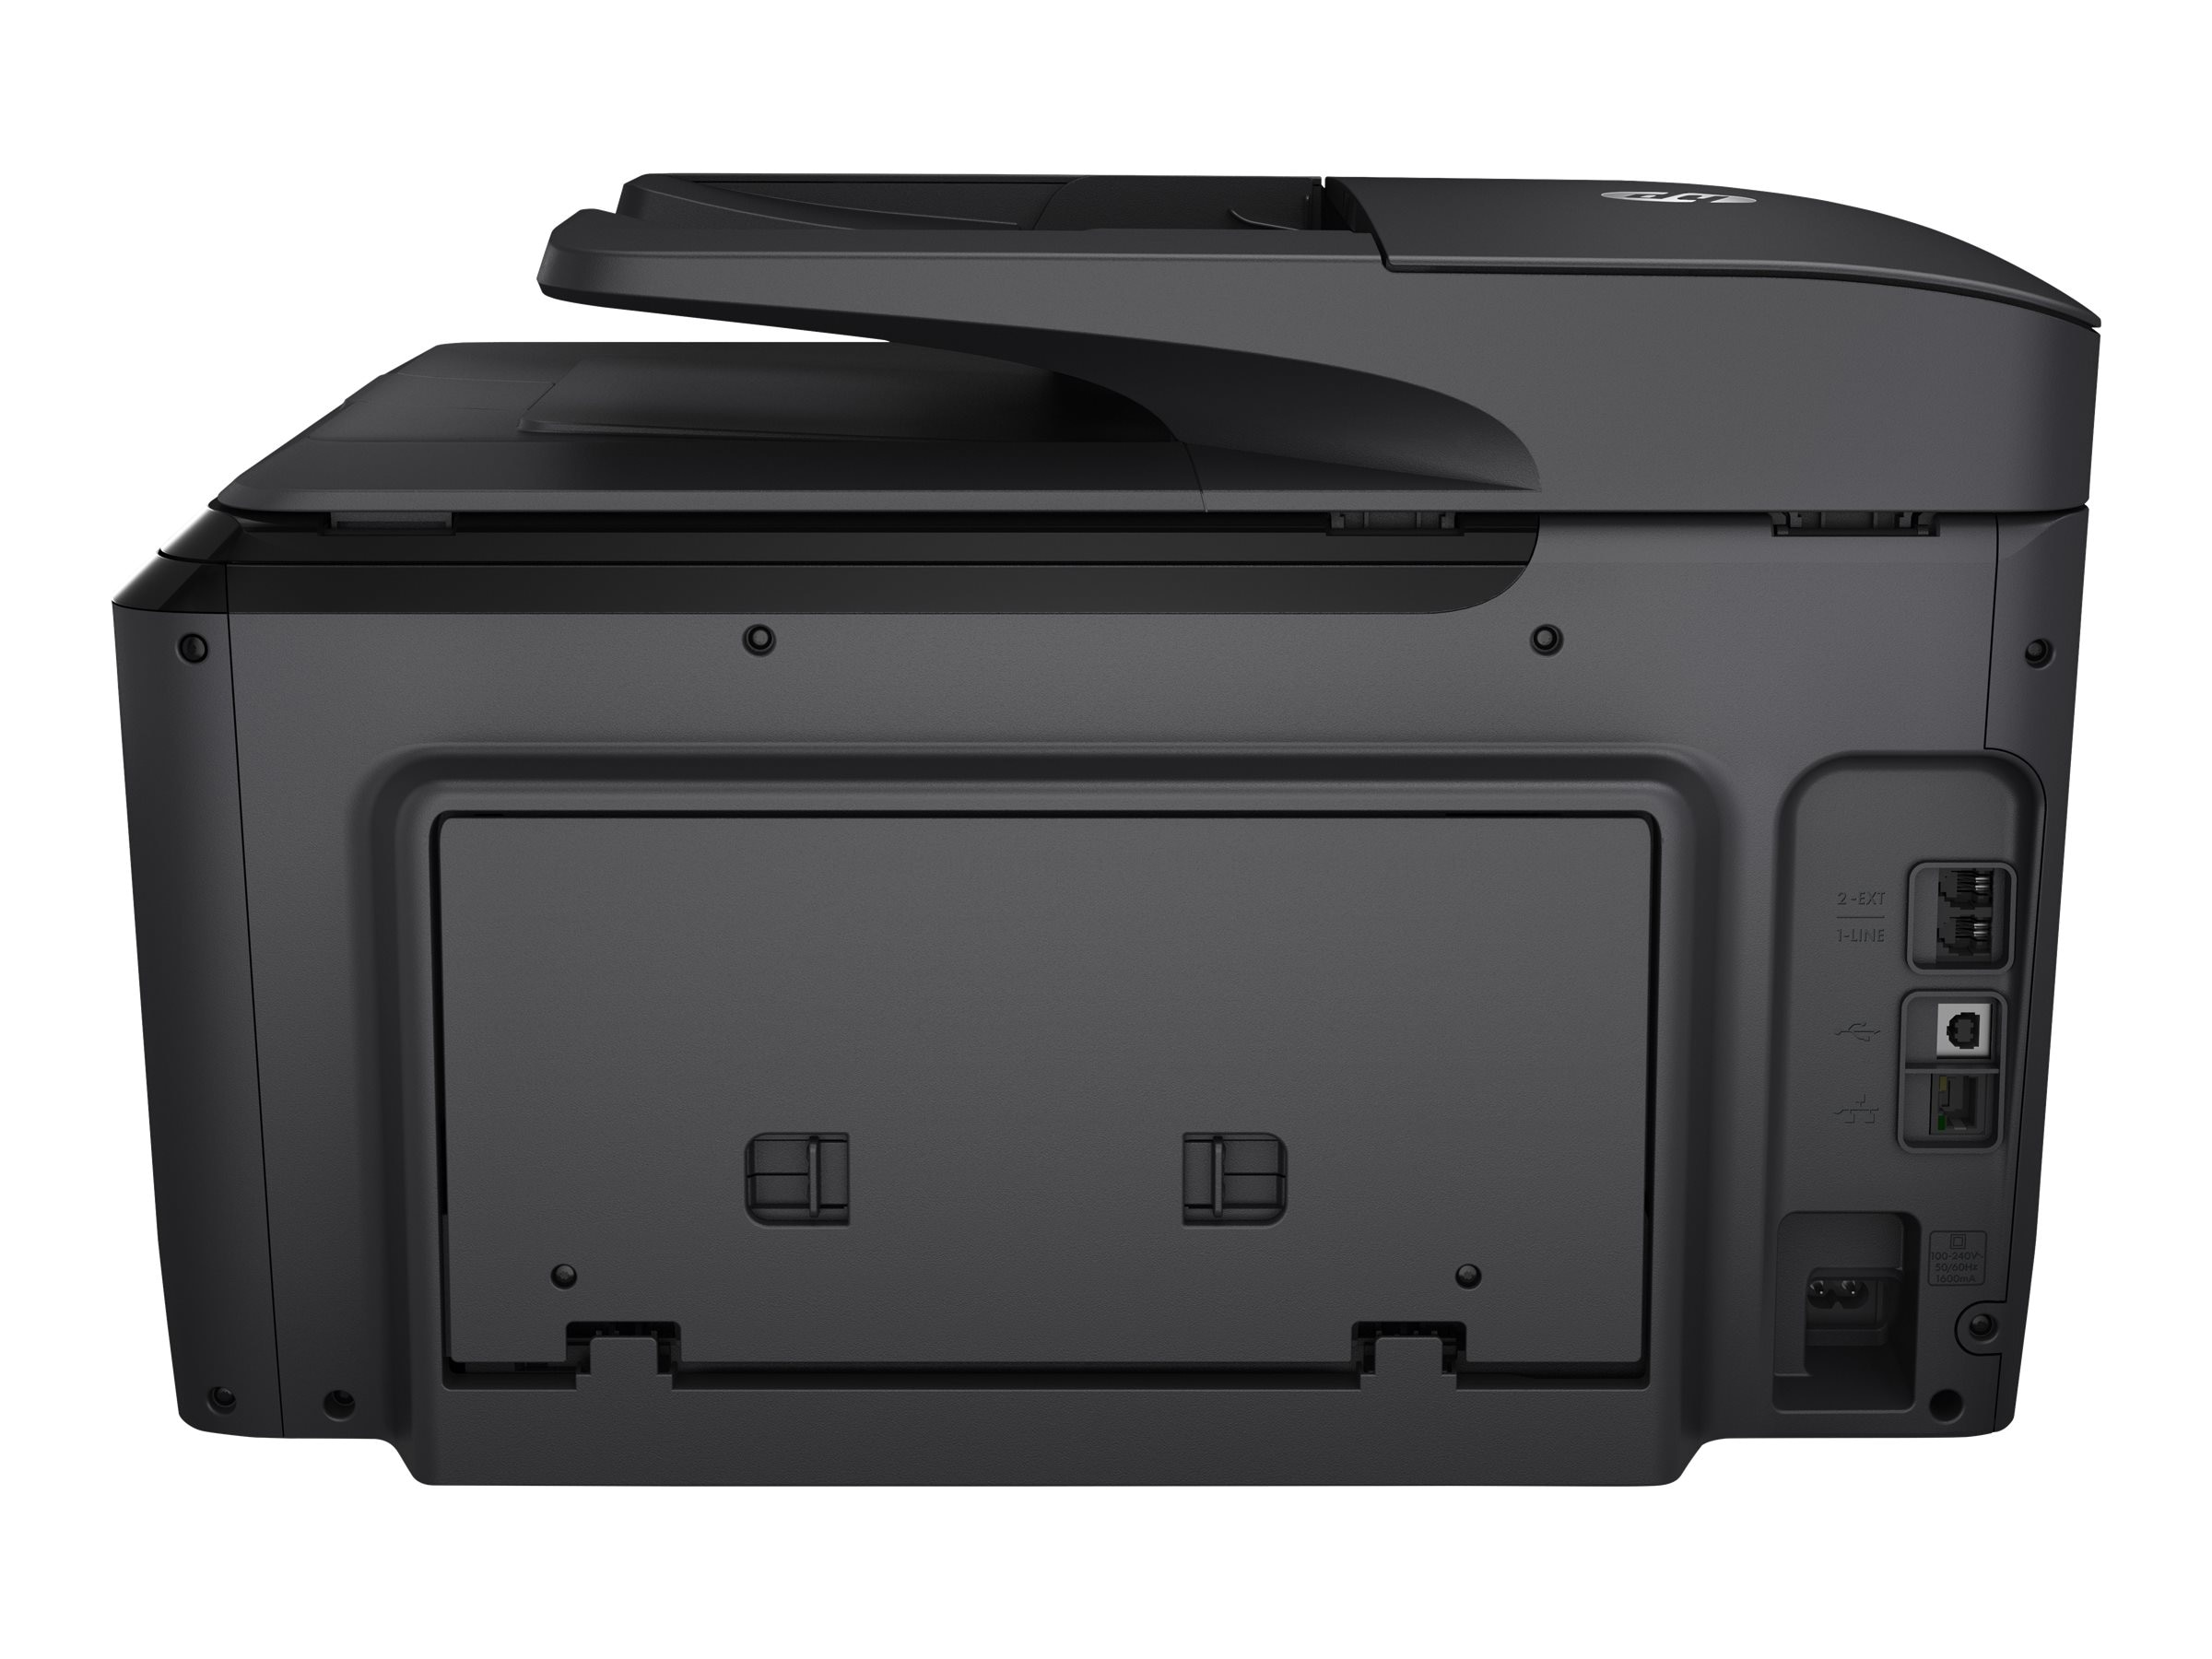 HP Officejet Pro 8710 All-In-One Printer ($199.95 - $70 Instant Rebate = $129.95 Expires 12 14), M9L66A#B1H